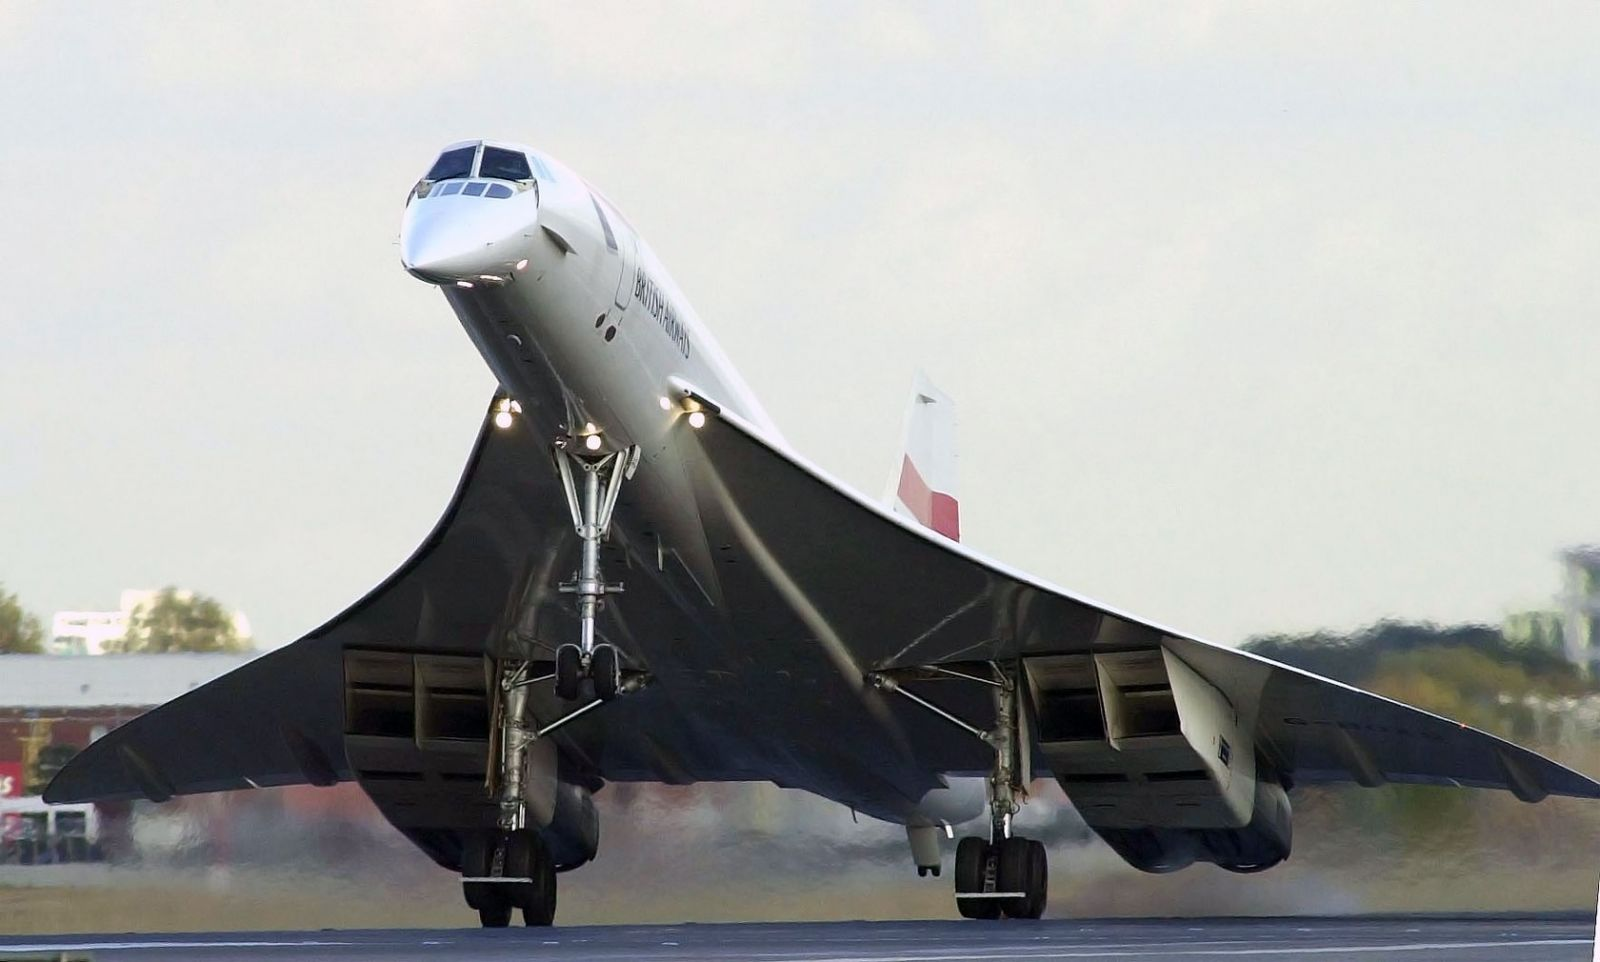 In SOS United States the Concorde returns.